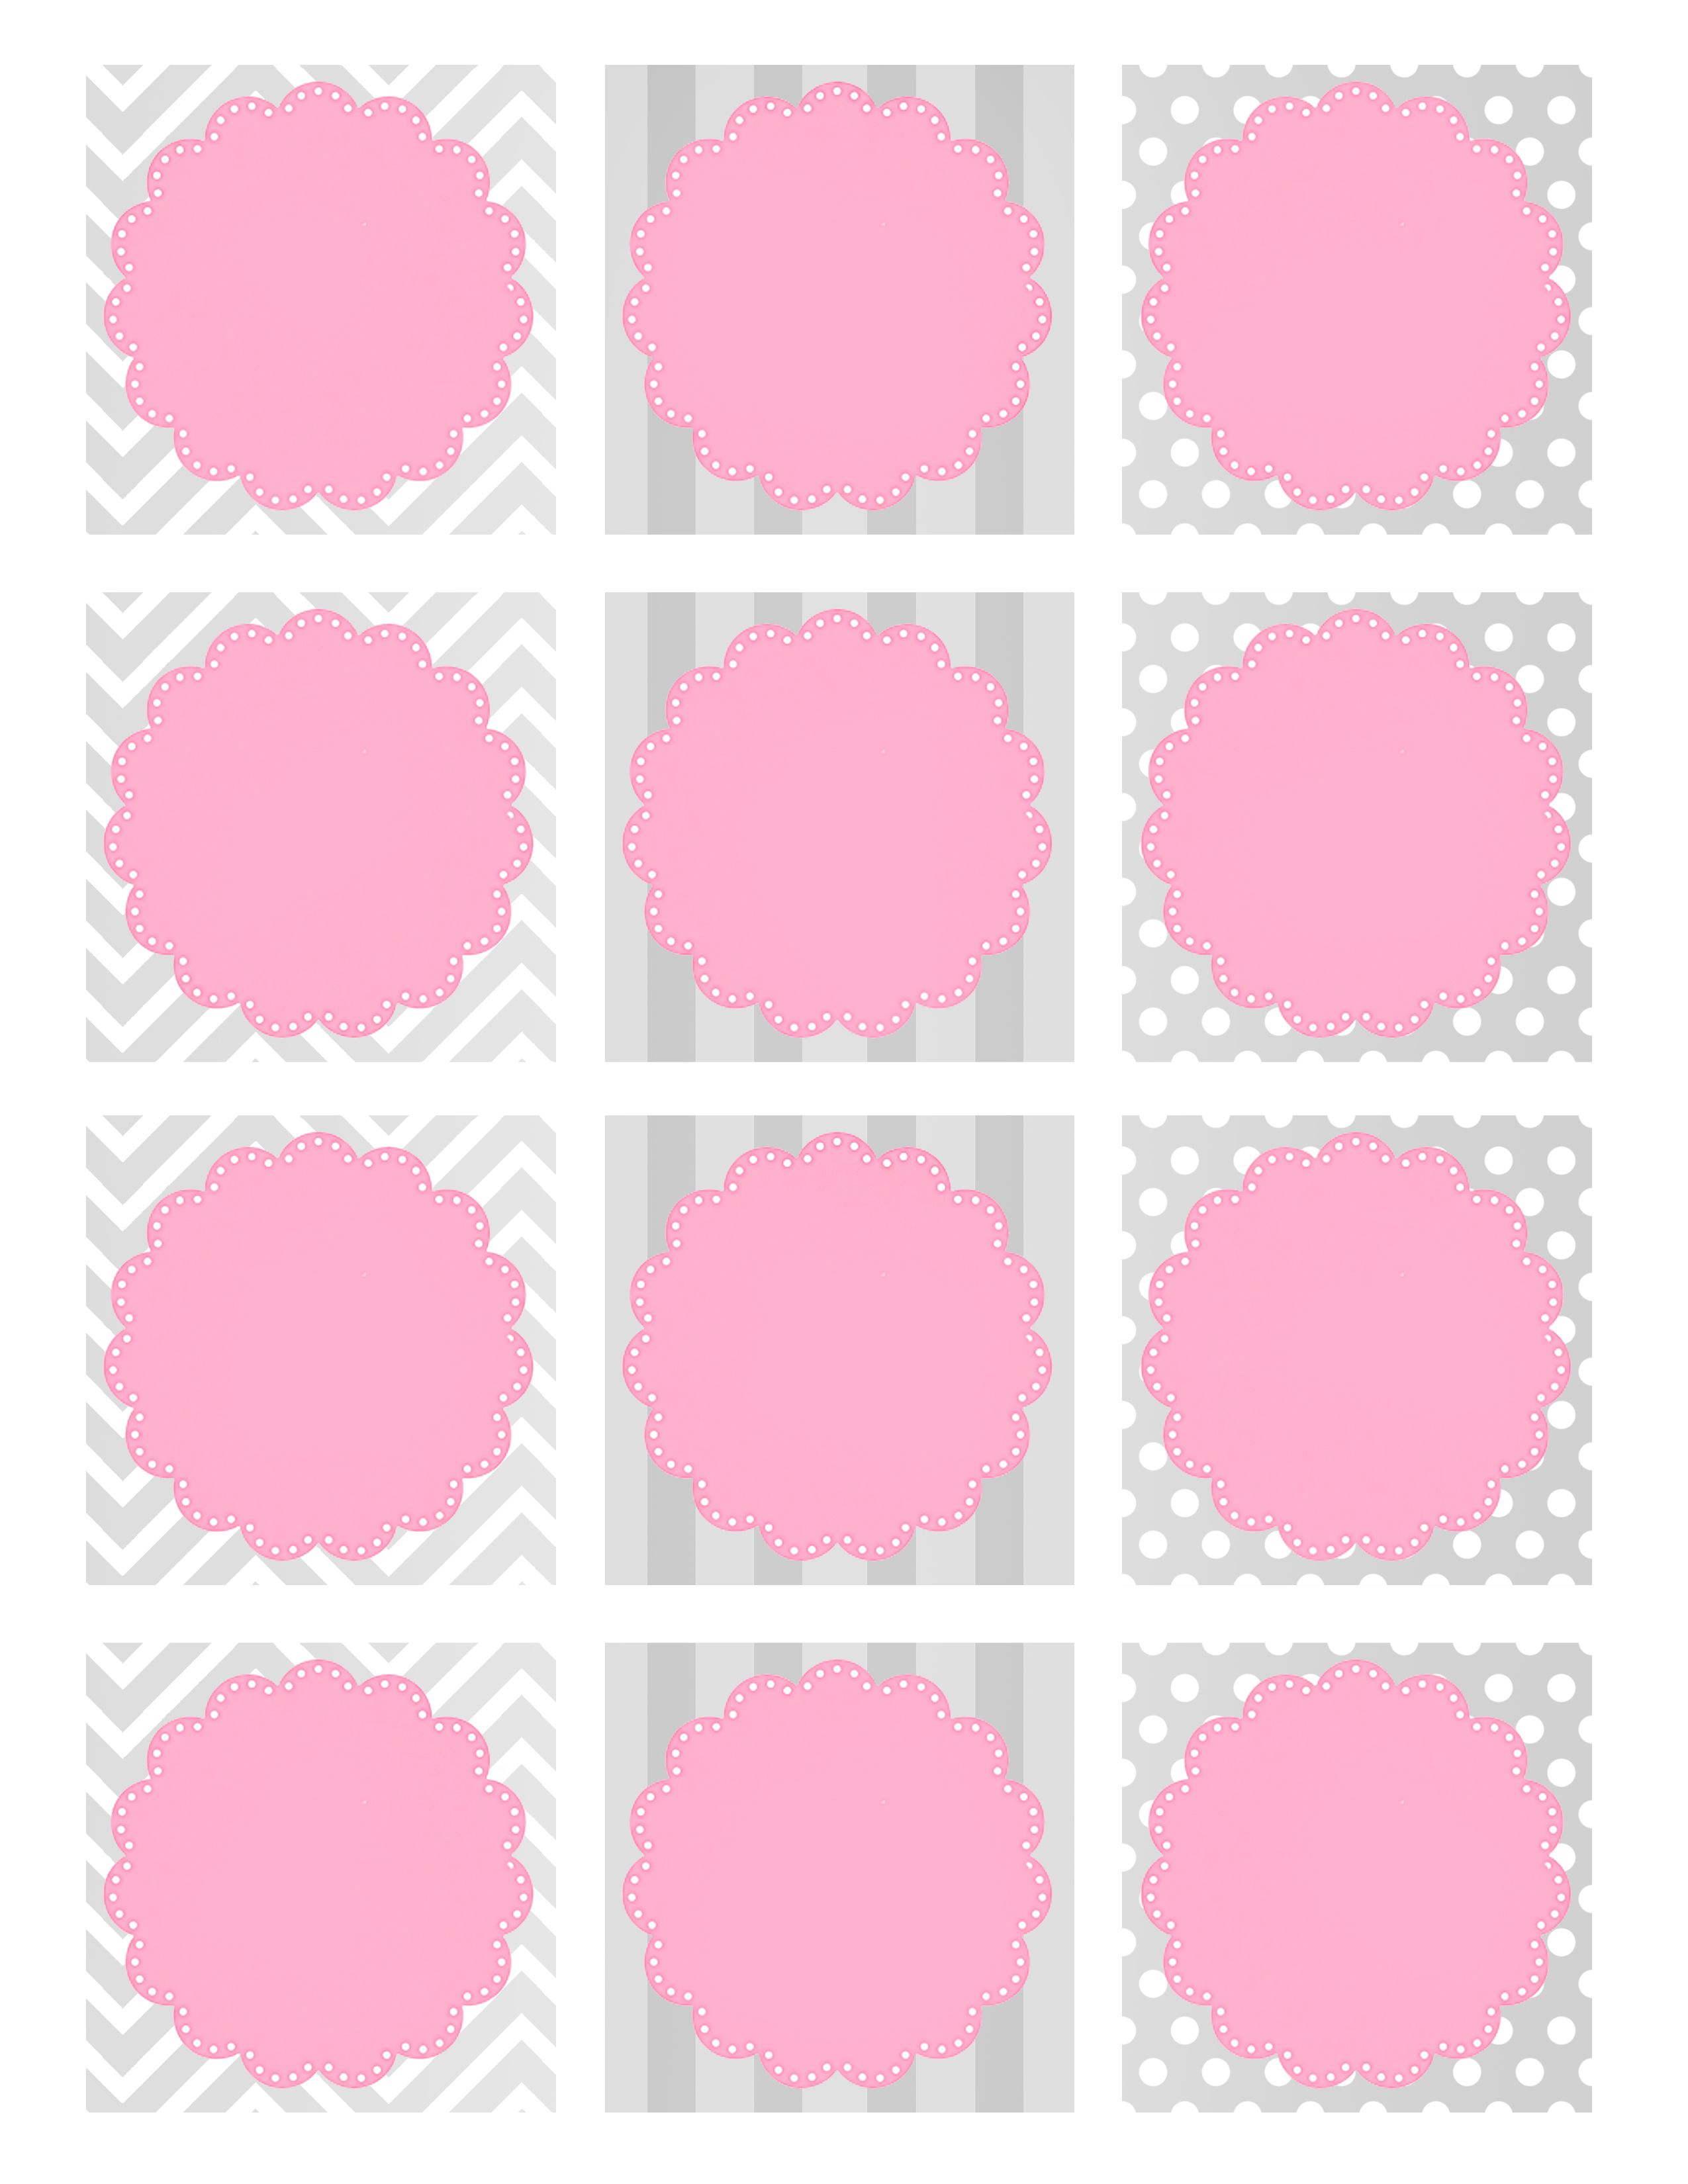 Baby Girl Shower Free Printables | Printable Pages | Pinterest - Free Printable Baby Shower Decorations For A Boy